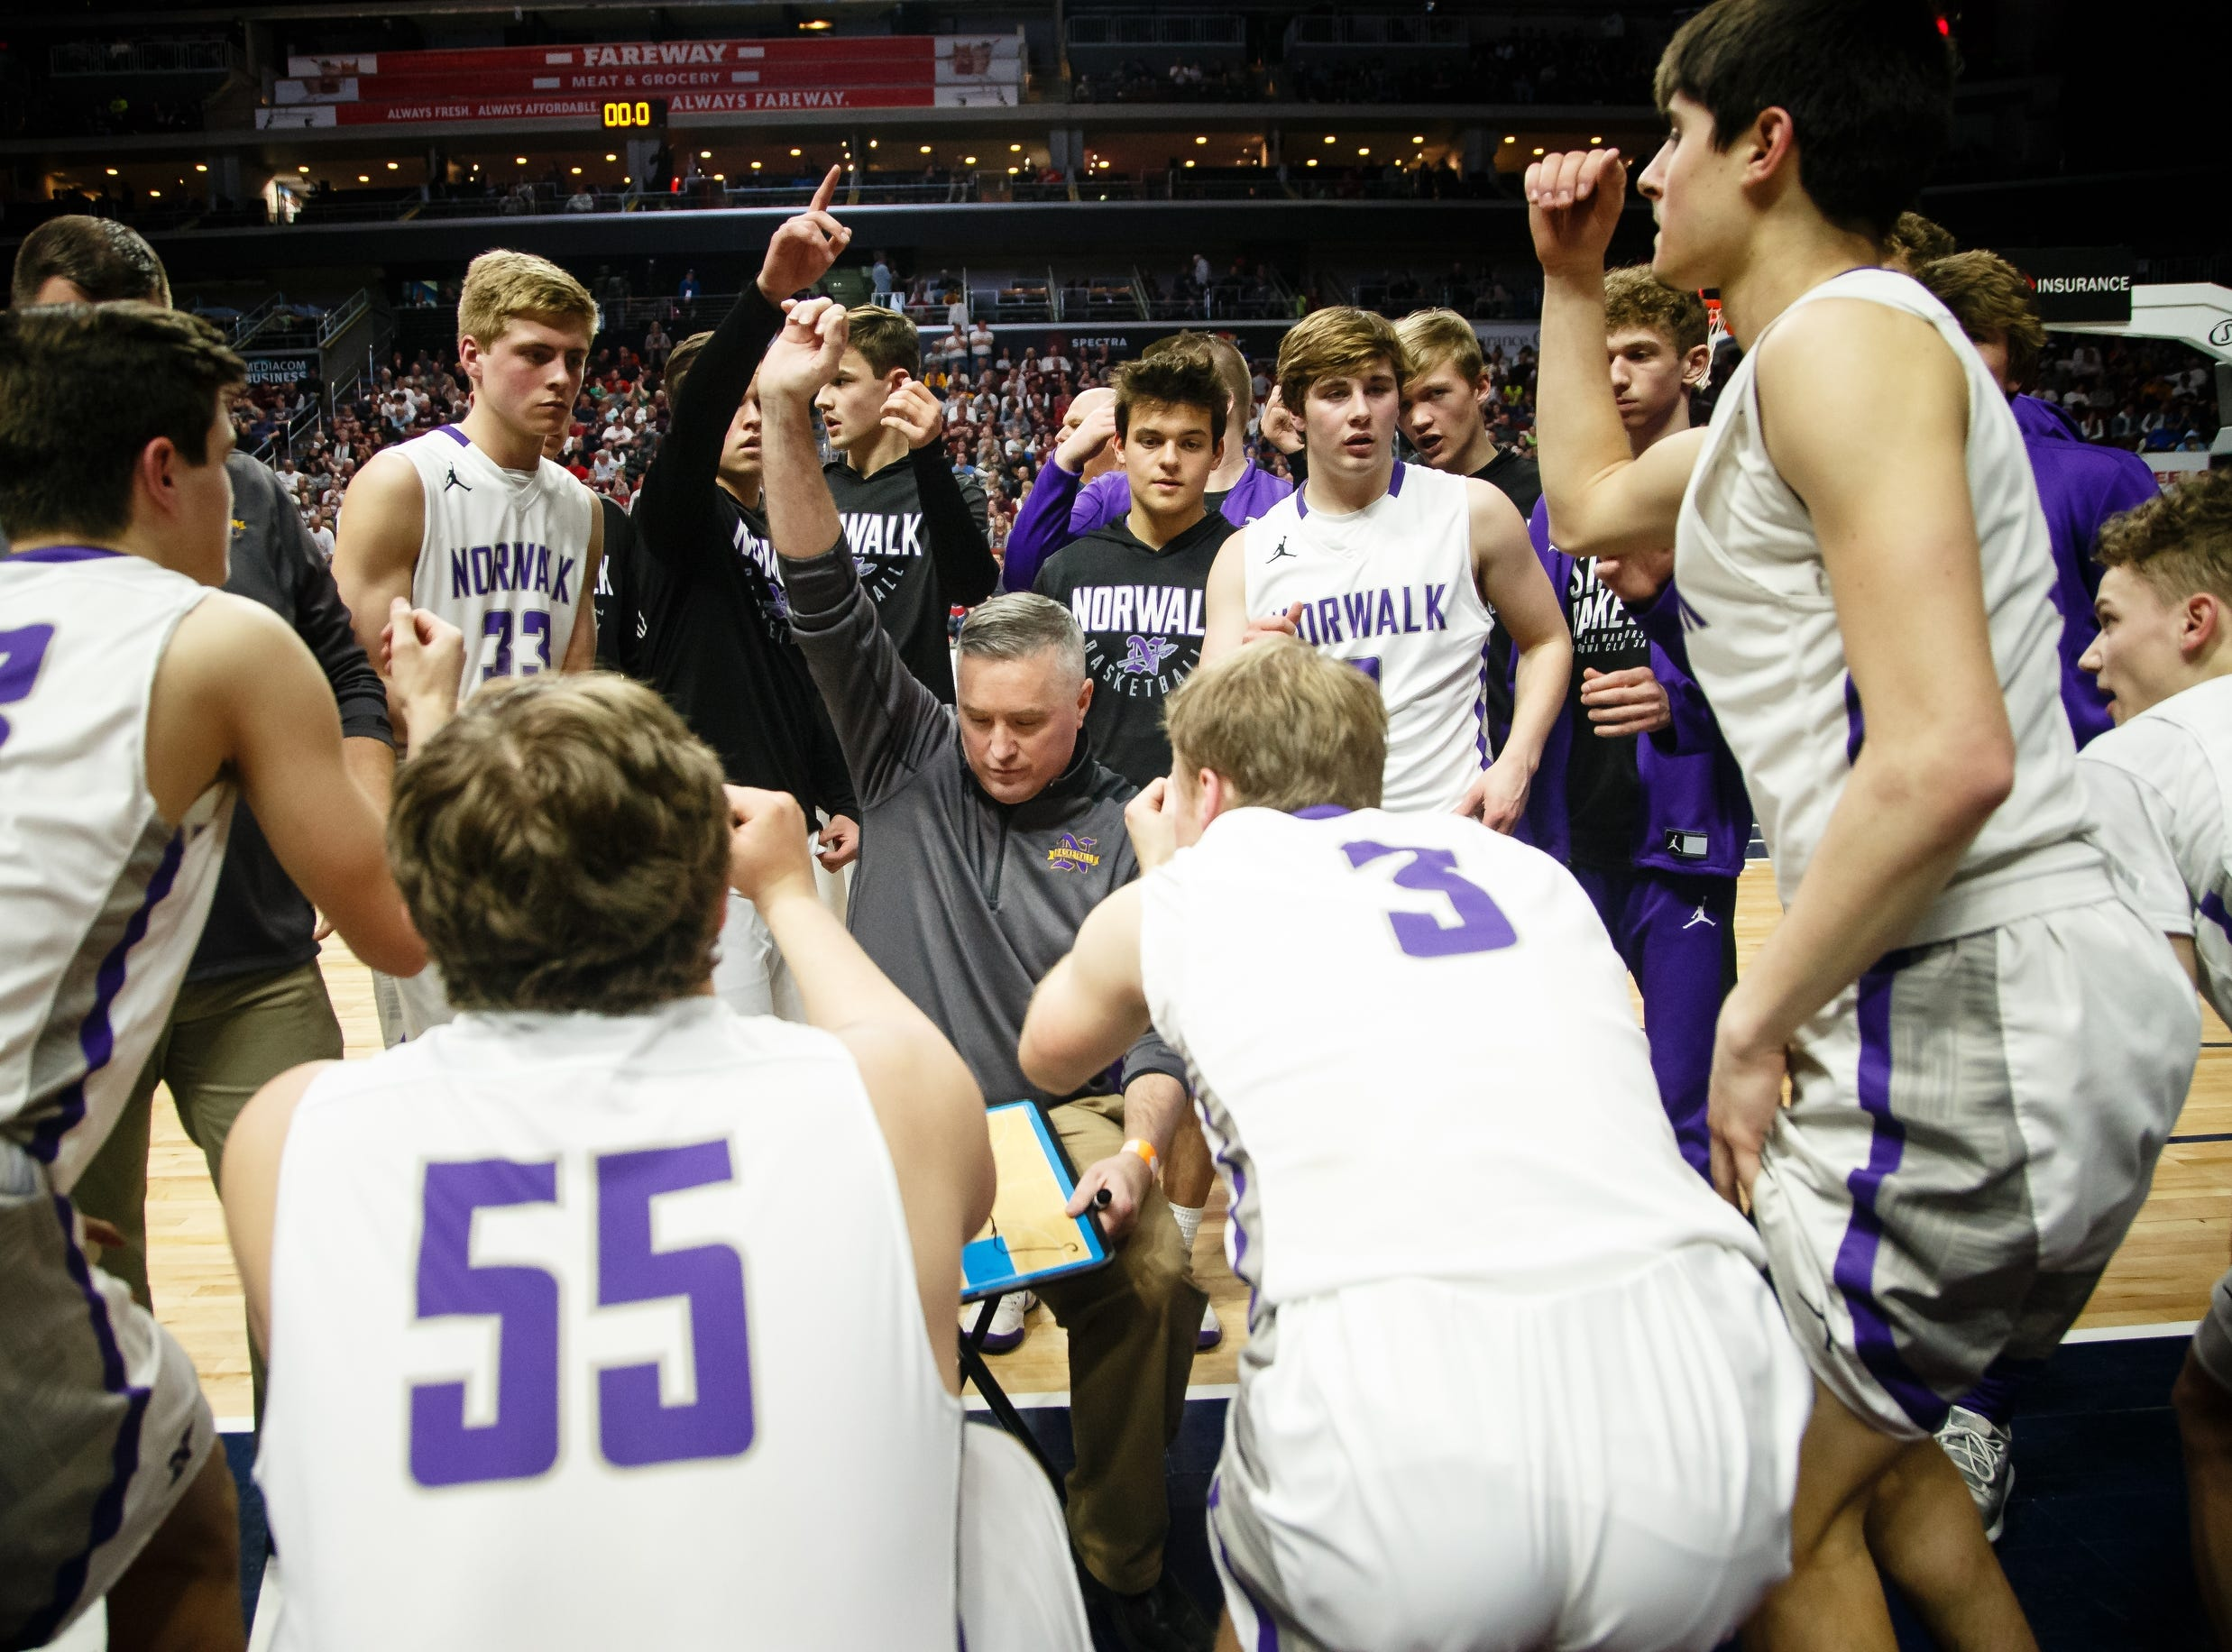 Norwalk head coach Chris Larson brings his team together during their boys 3A state basketball championship game on Friday, March 8, 2019 in Des Moines. Oskaloosa would go on to defeat Norwalk 48-44 to win the 3A championship.